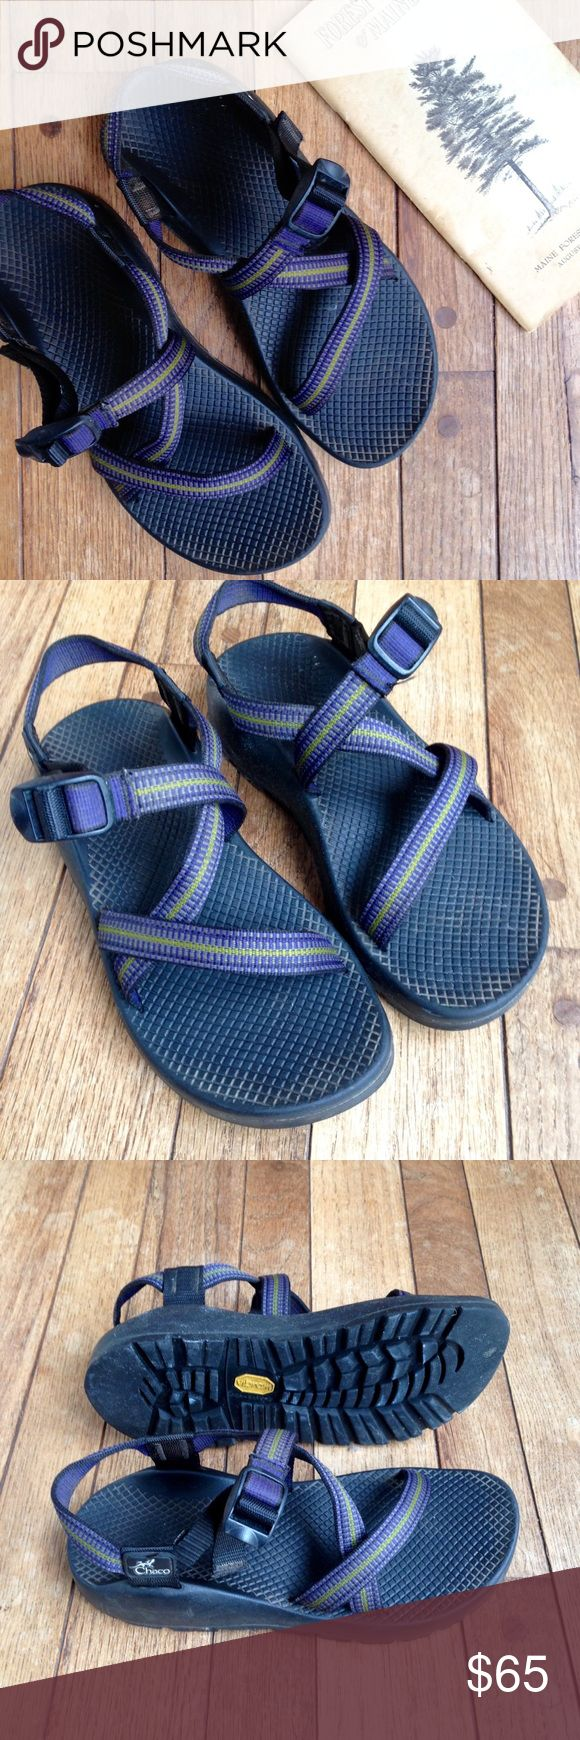 Lavender & citron Chacos sandals EUC. Black soles w/lavender and light green striped straps. Vibram soles are great for hiking. Slight wear on heels. Women's size 8. Chacos Shoes Sandals